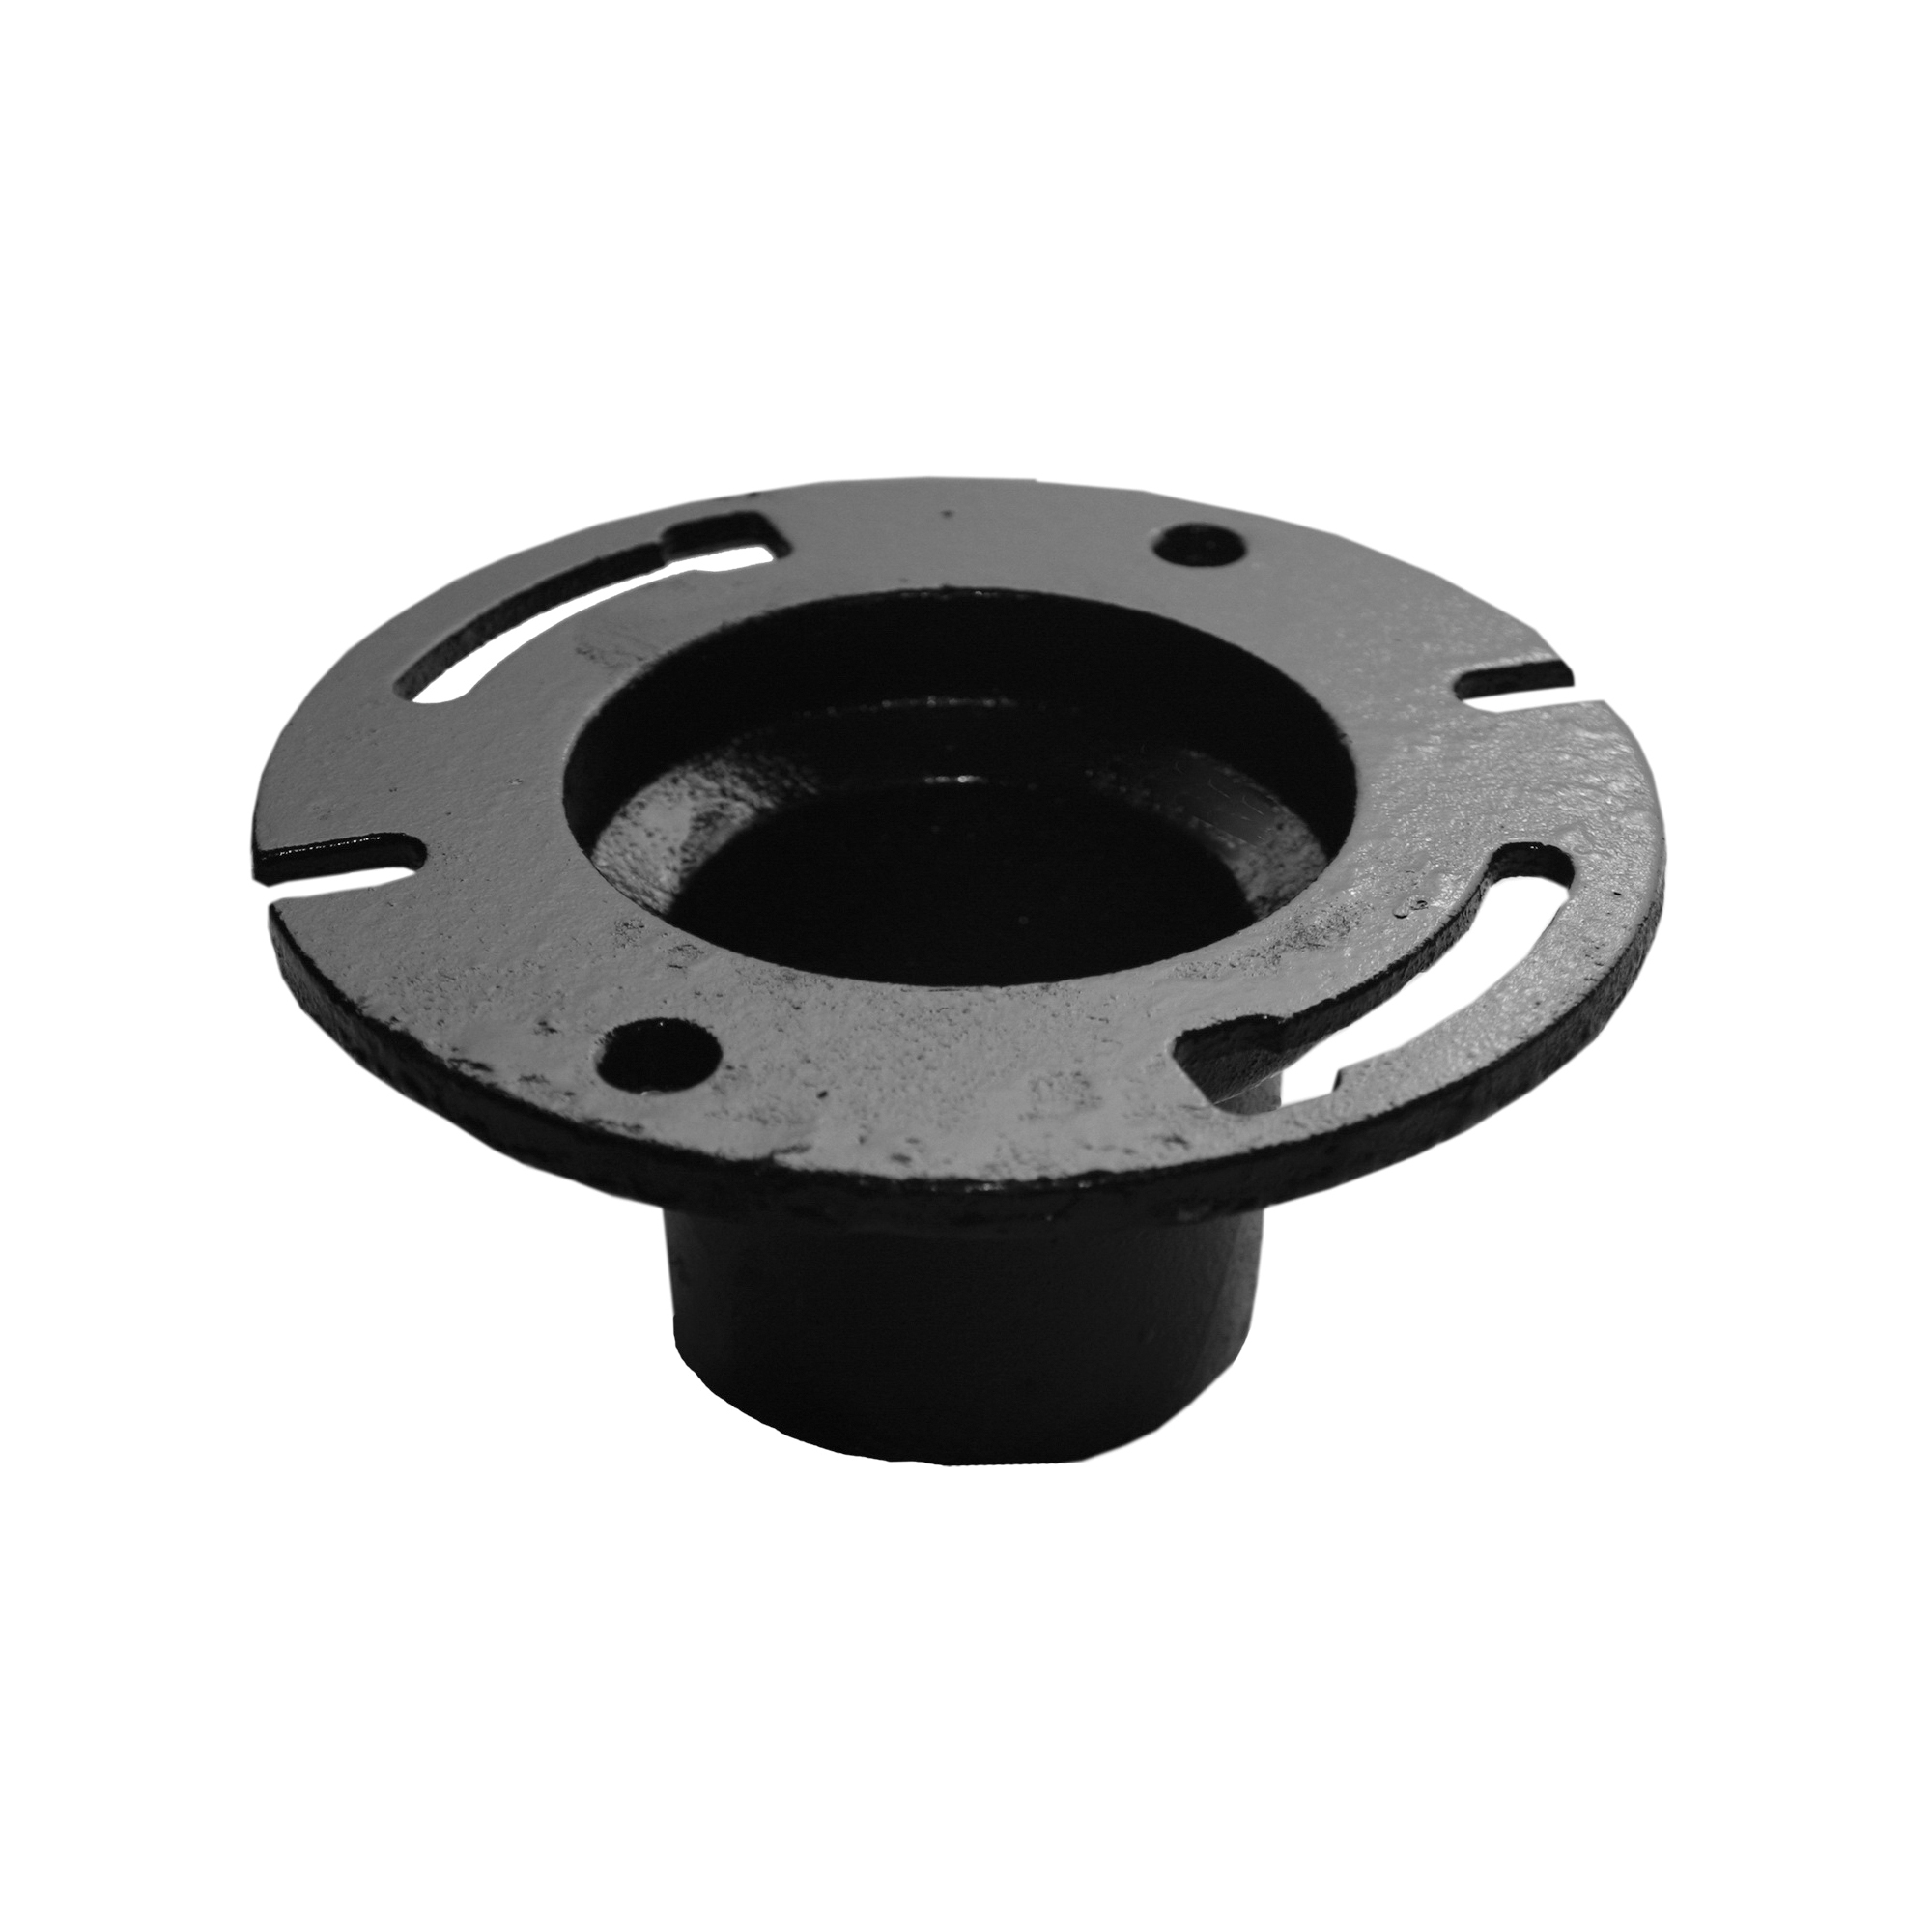 Tyler Pipe 010593 9-480 Slot and Notch No-Hub Closet Flange, 4 x 3 in Pipe, Cast Iron, Domestic